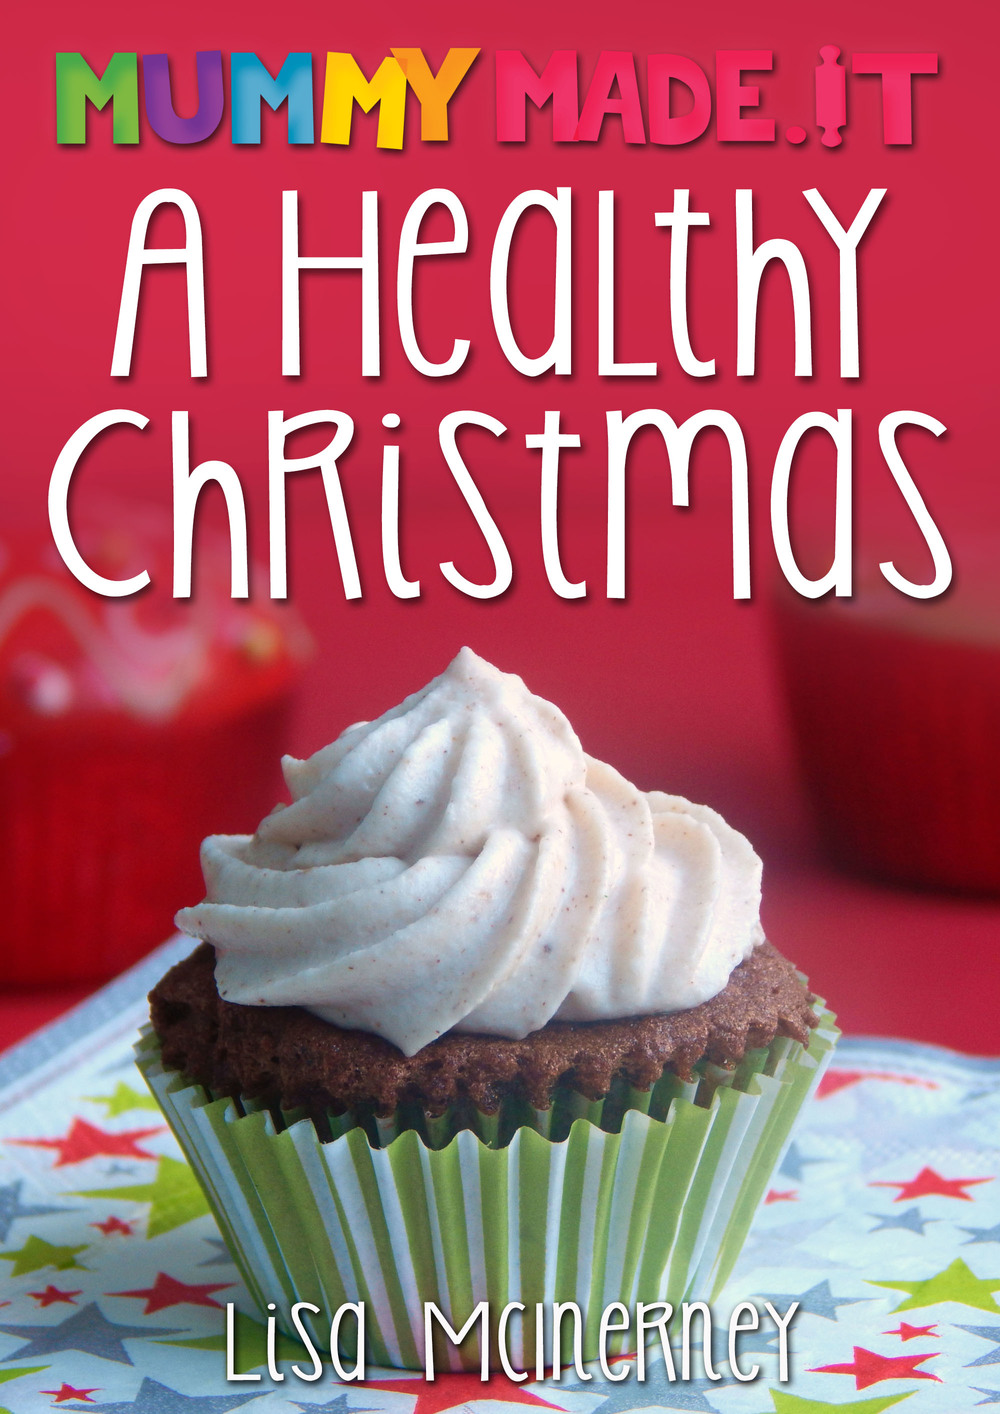 Mummy-made-it-a-healthy-christmas